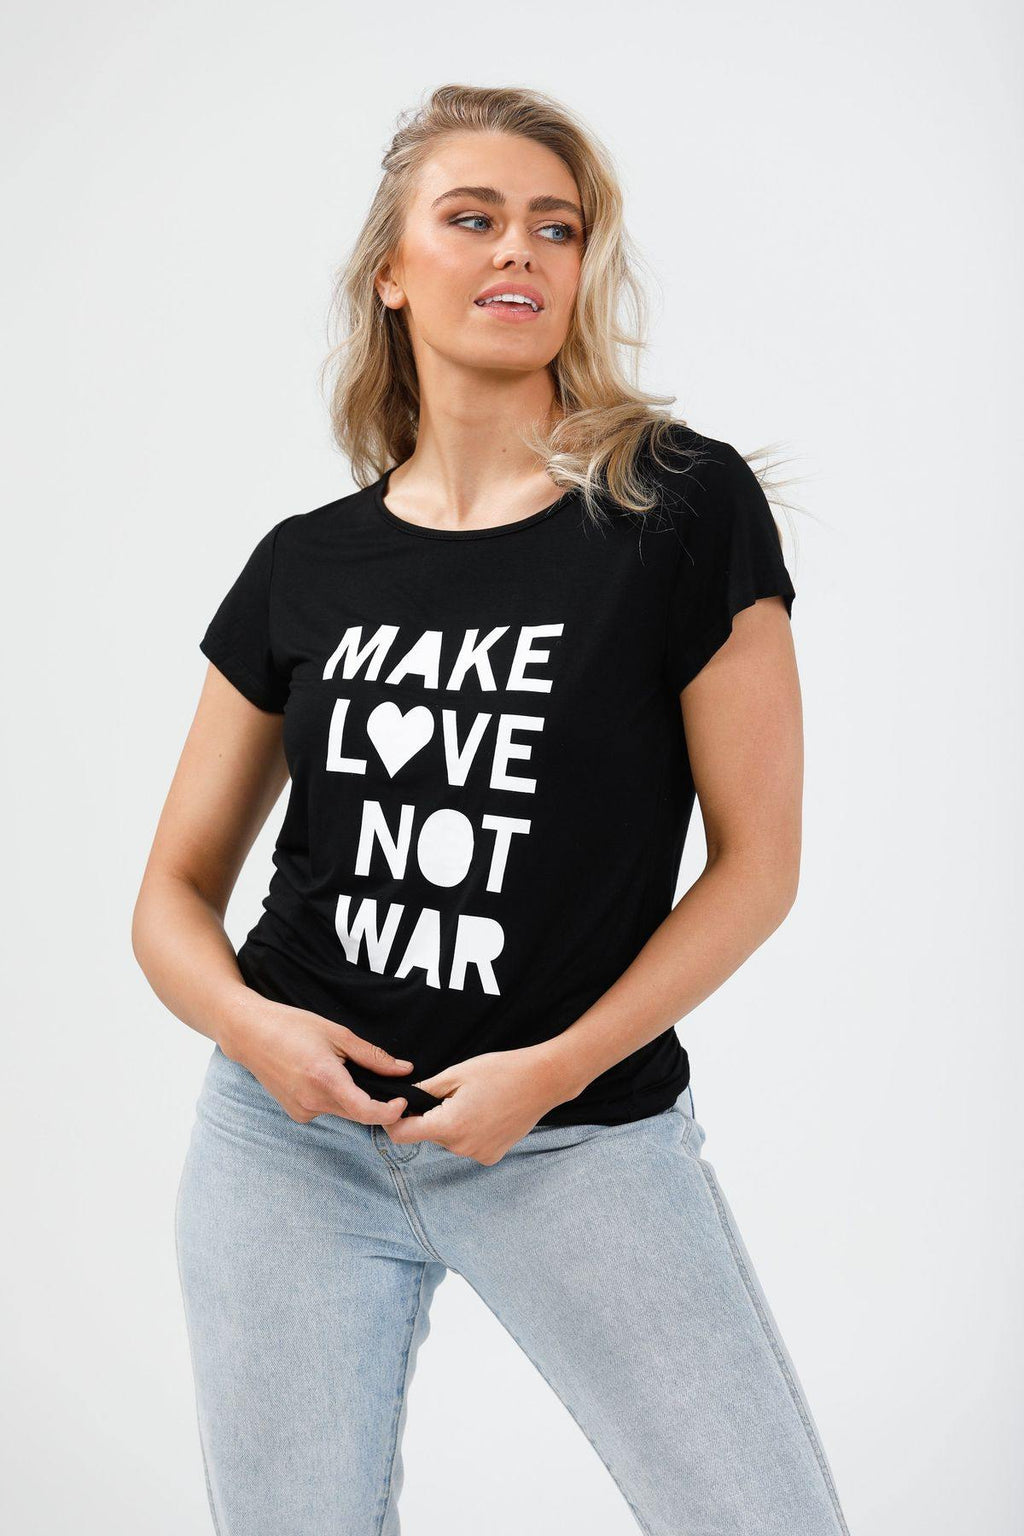 Love is a Verb Tee by Brave and True